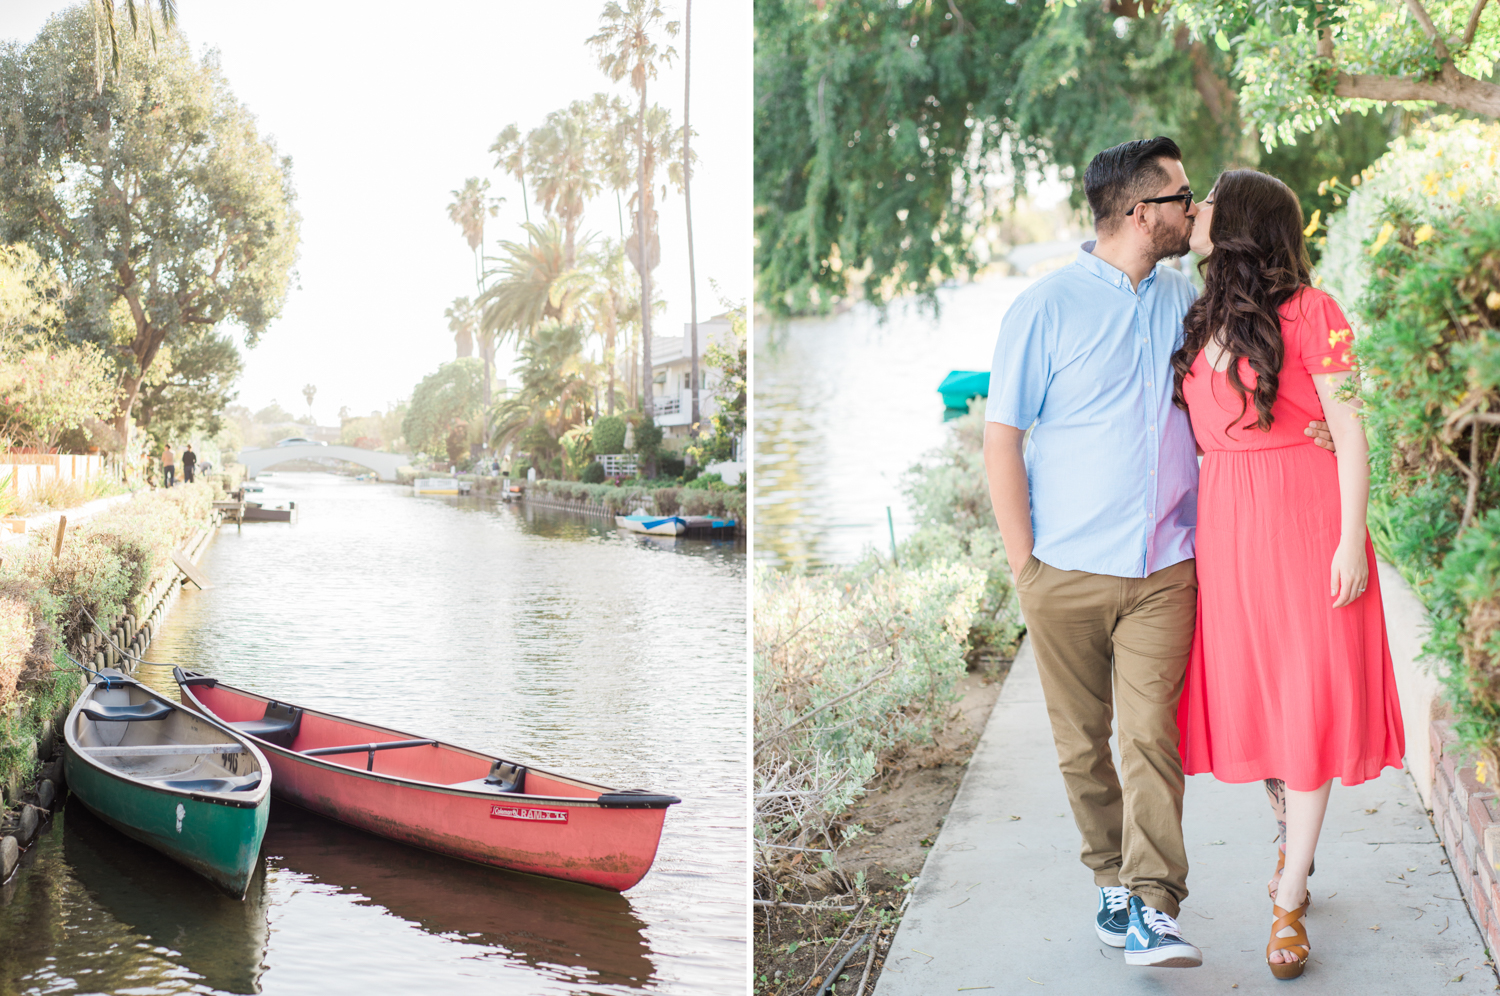 lauren&anthony-venice-canals-engagement-session-photography-los-angeles-wedding-photographer-venice-1.jpg